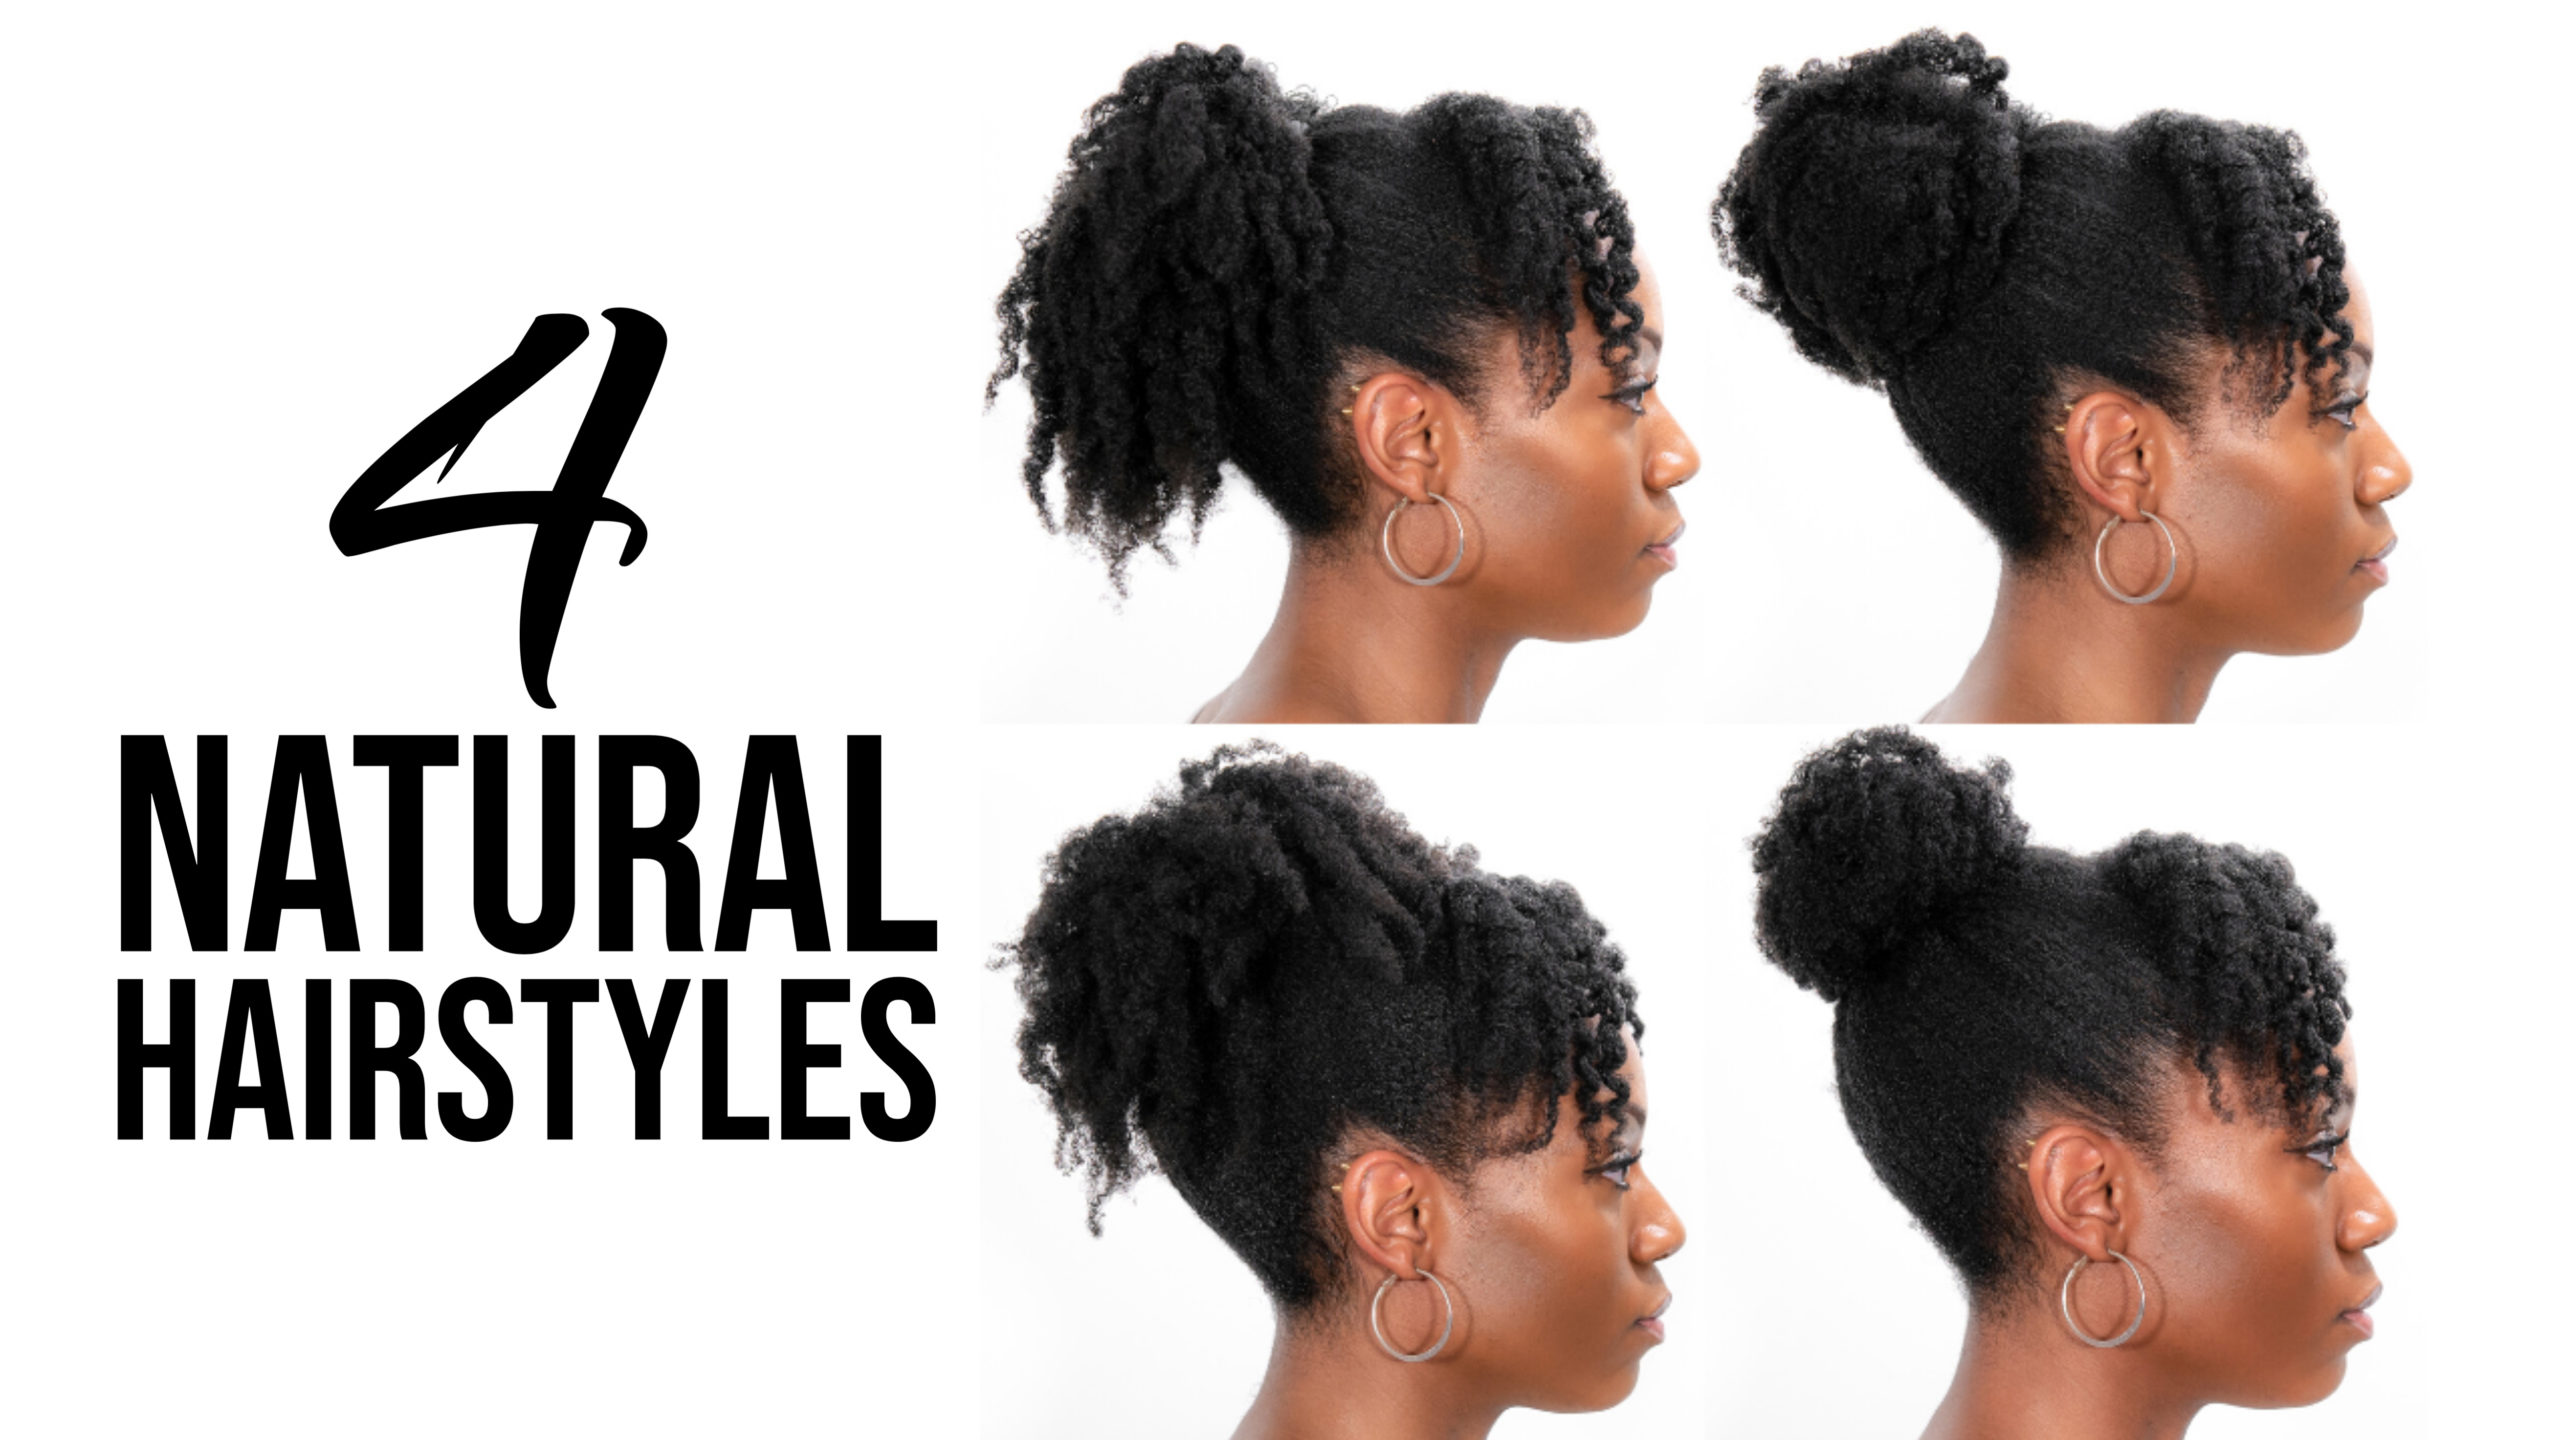 4 Natural Hairstyles Twist Out Updo Hairstyles With Bangs Fringe